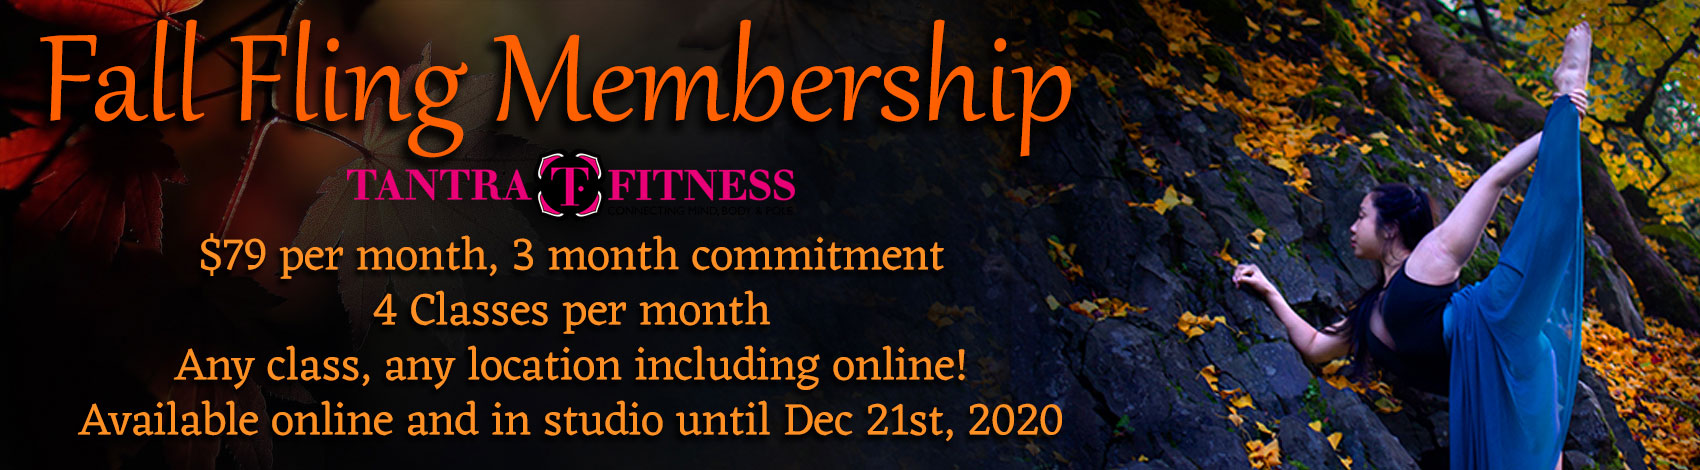 Fall Fling Membership - $79/month